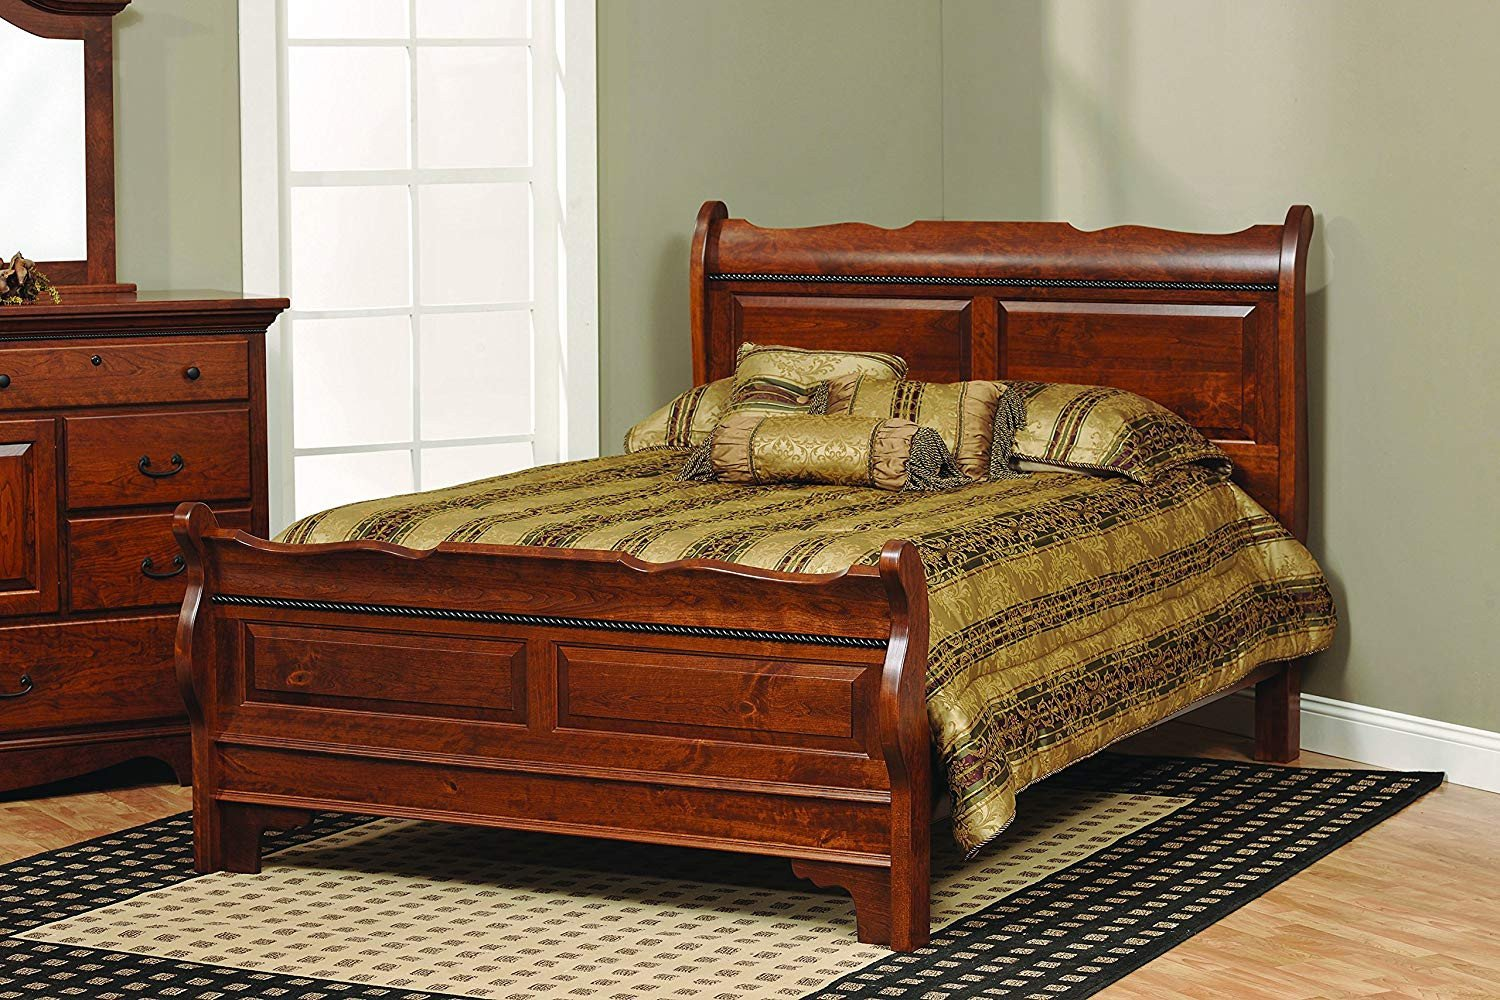 Solid Cherry Wood Bedroom Furniture New Amazon Amish Merlot King solid Rustic Cherry Wood